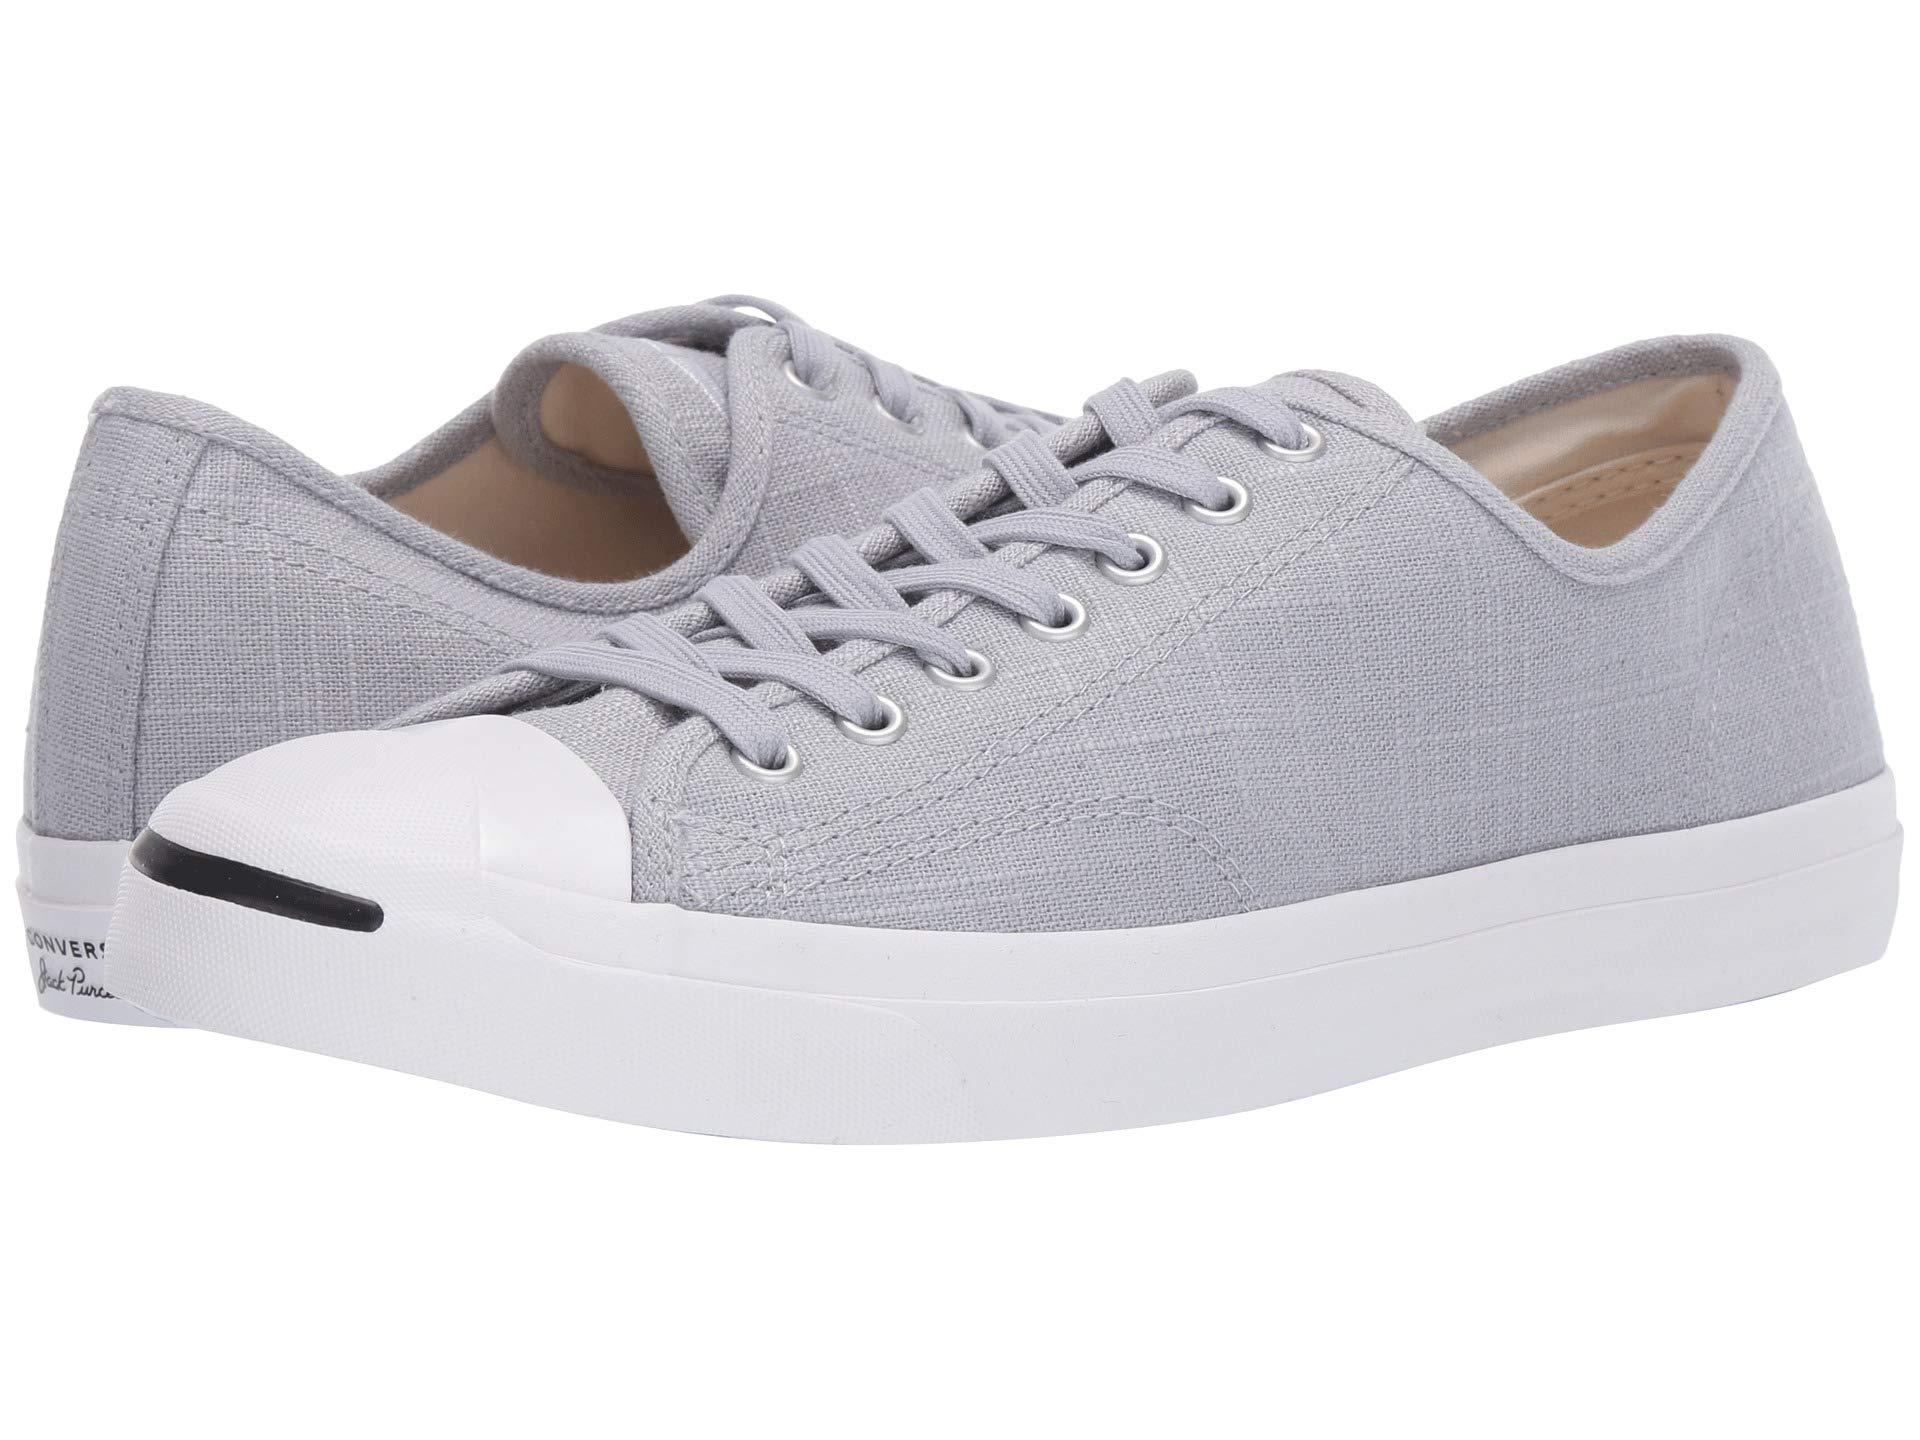 16aed112cb26 Lyst - Converse Jack Purcell Jack (navy navy white) Classic Shoes in ...